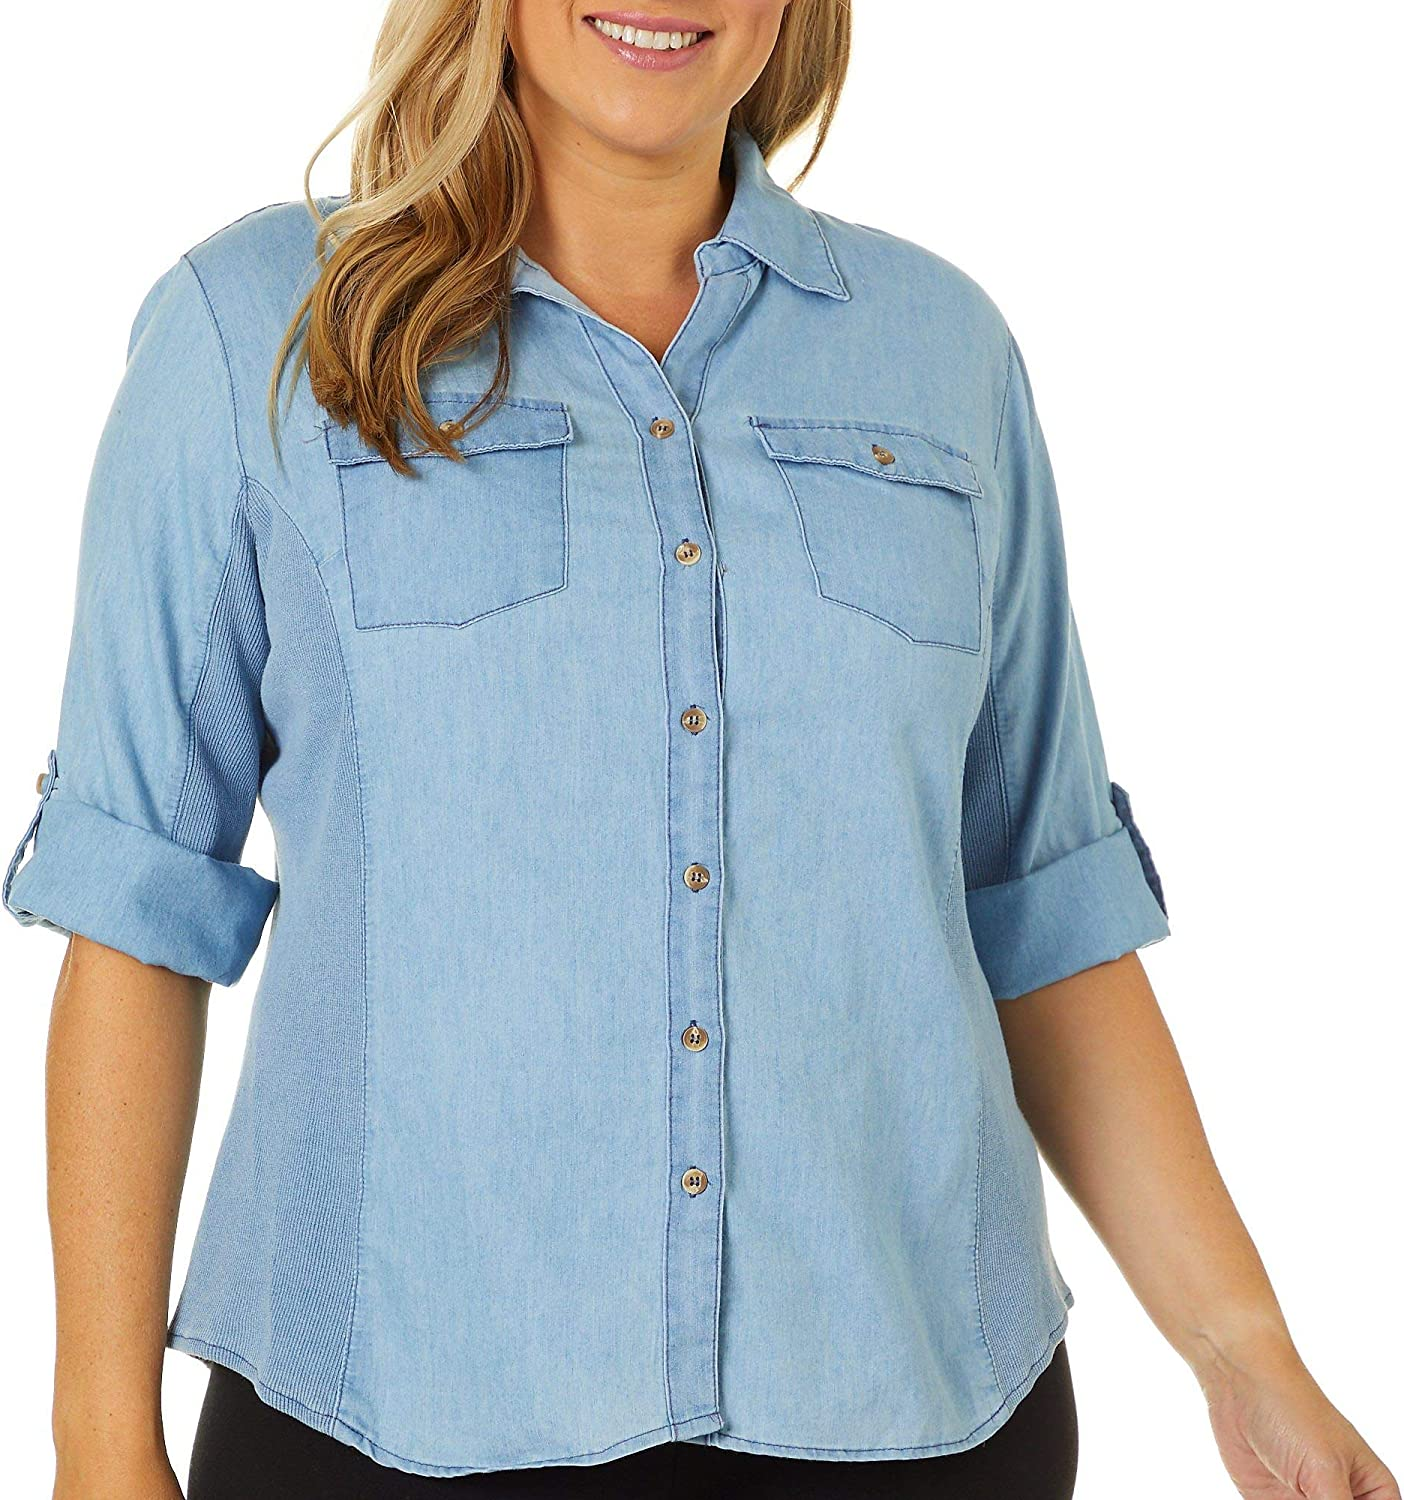 Coral Bay Plus Knit to Fit Denim Print Button Down Top Small Light wash